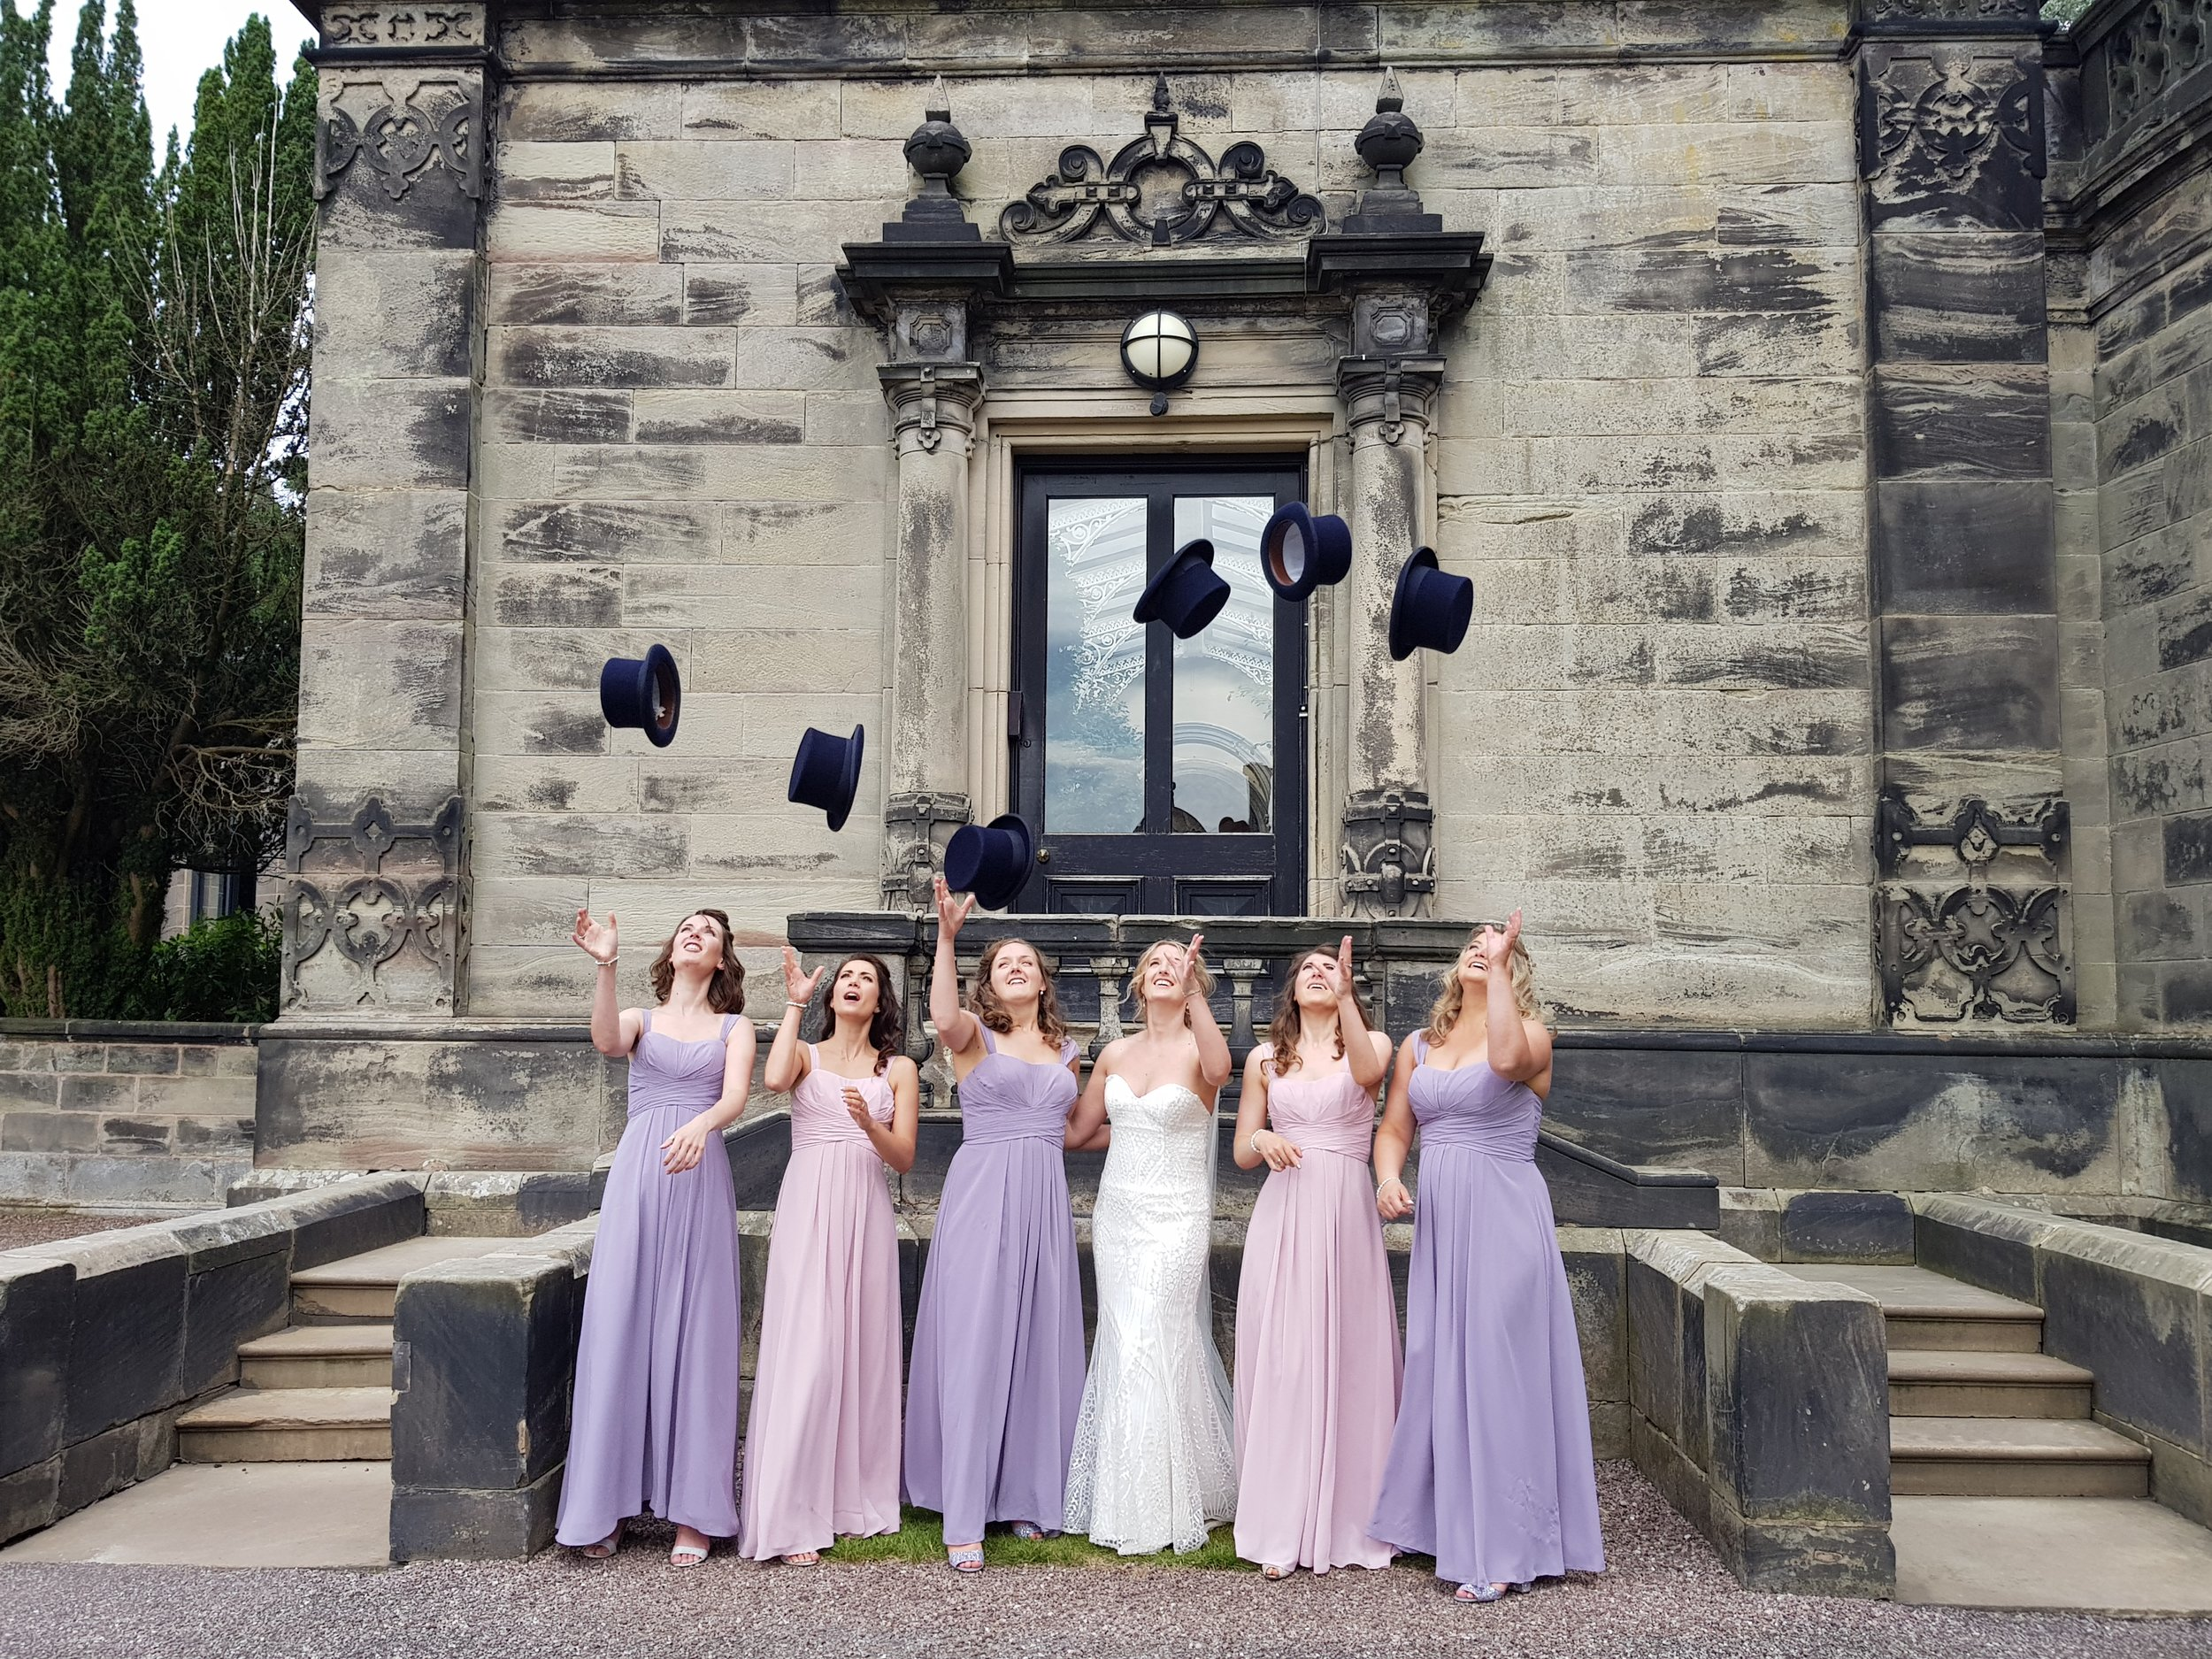 Wedding photo ideas: top hat toss by the bride and bridesmaids